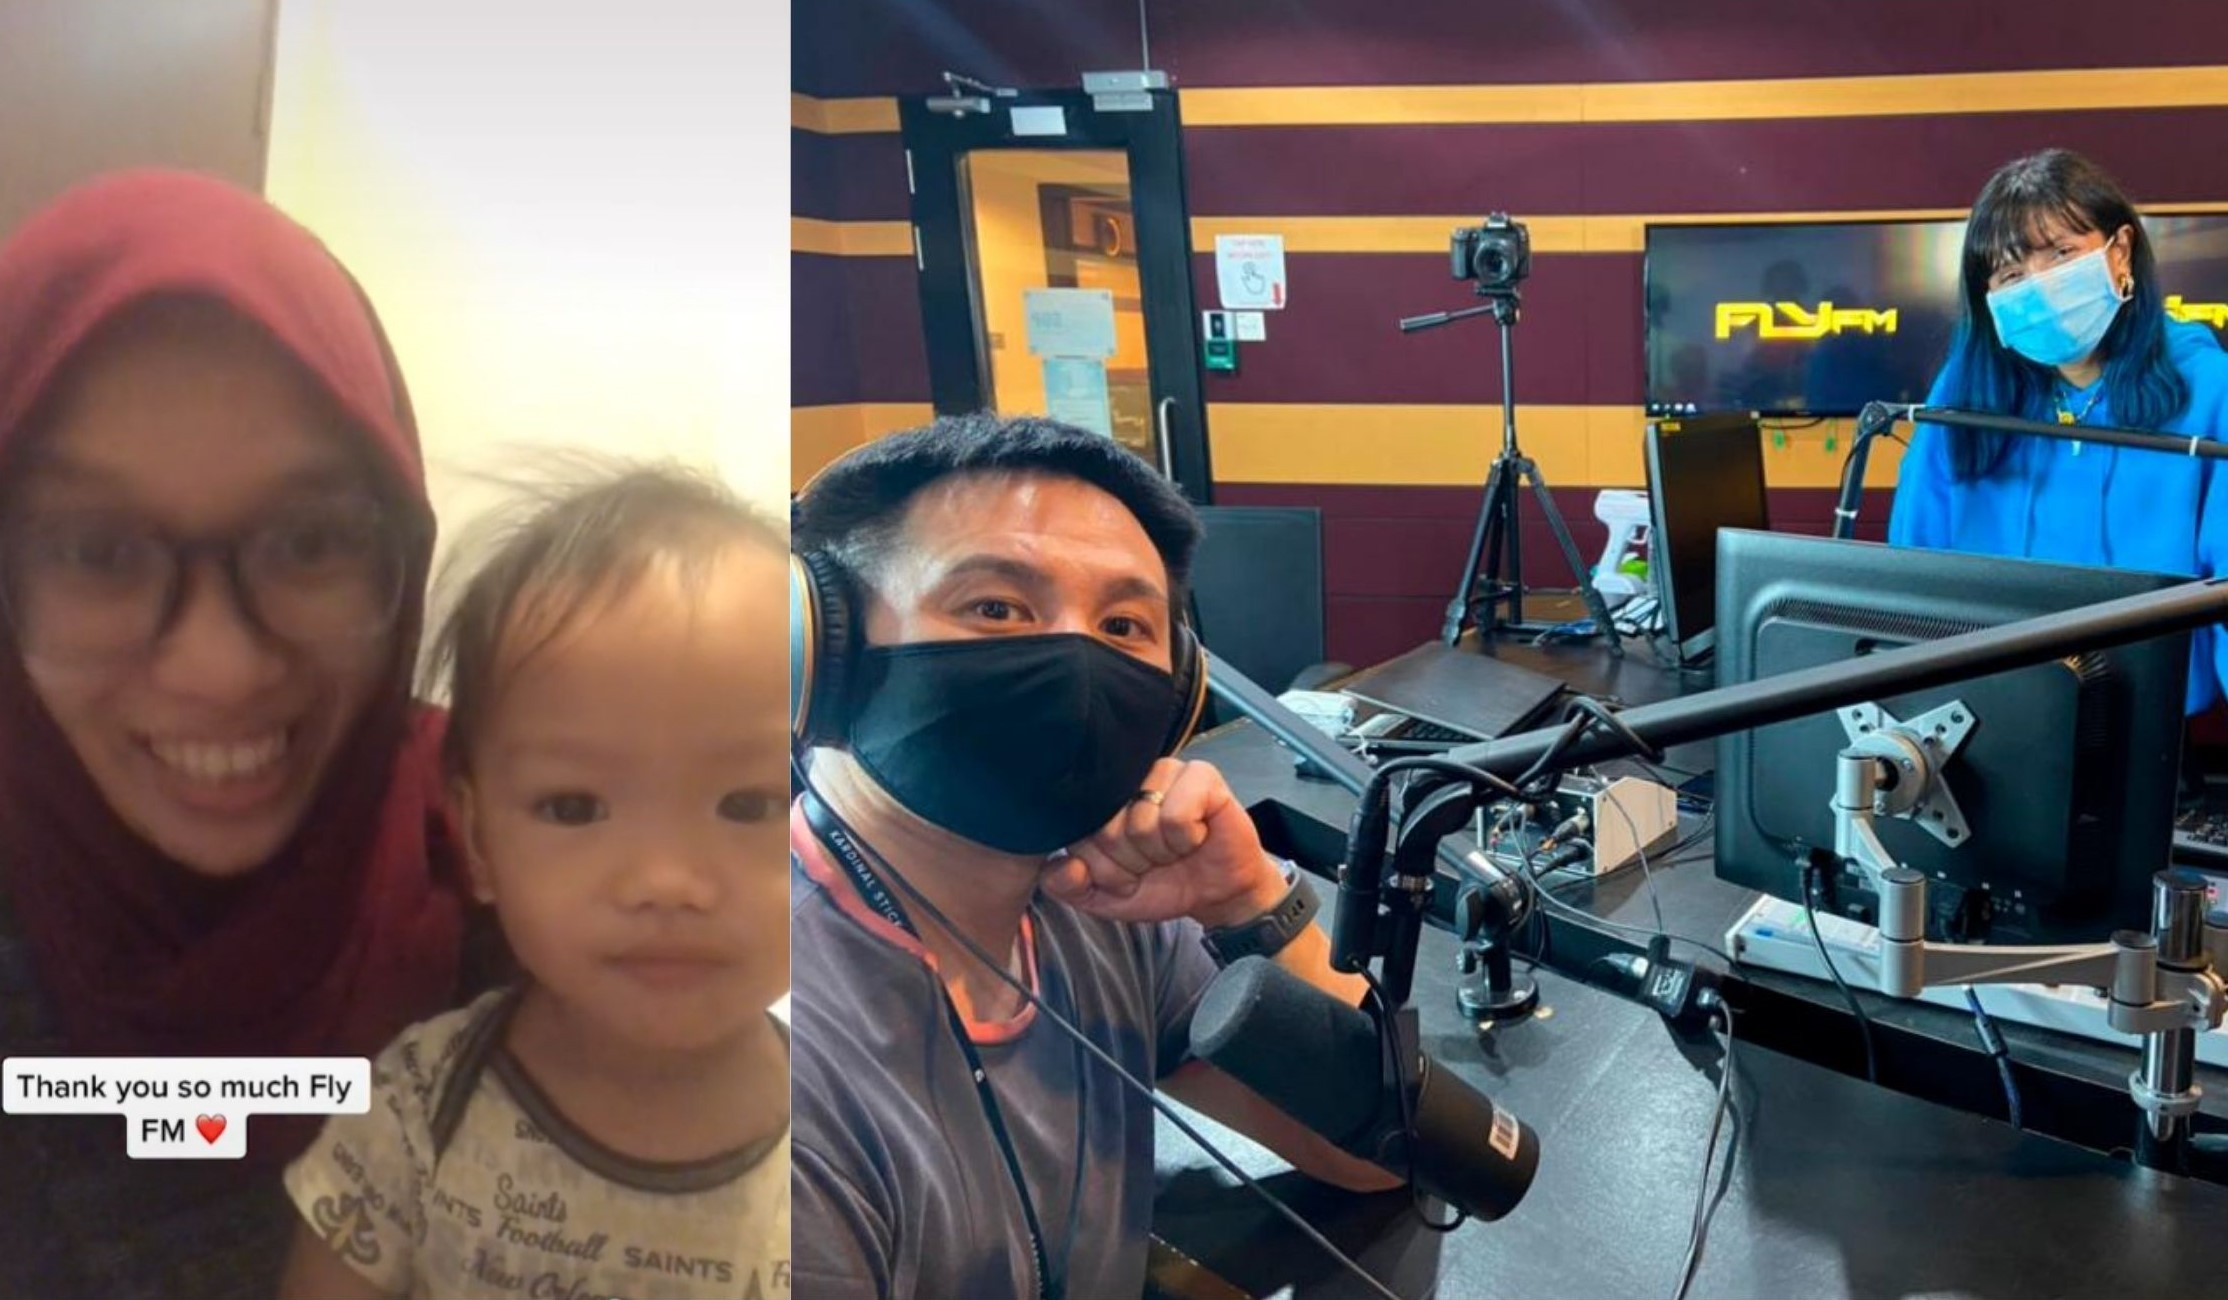 Fly FM Helps Reunite Family After Being Separated For 6 Years!